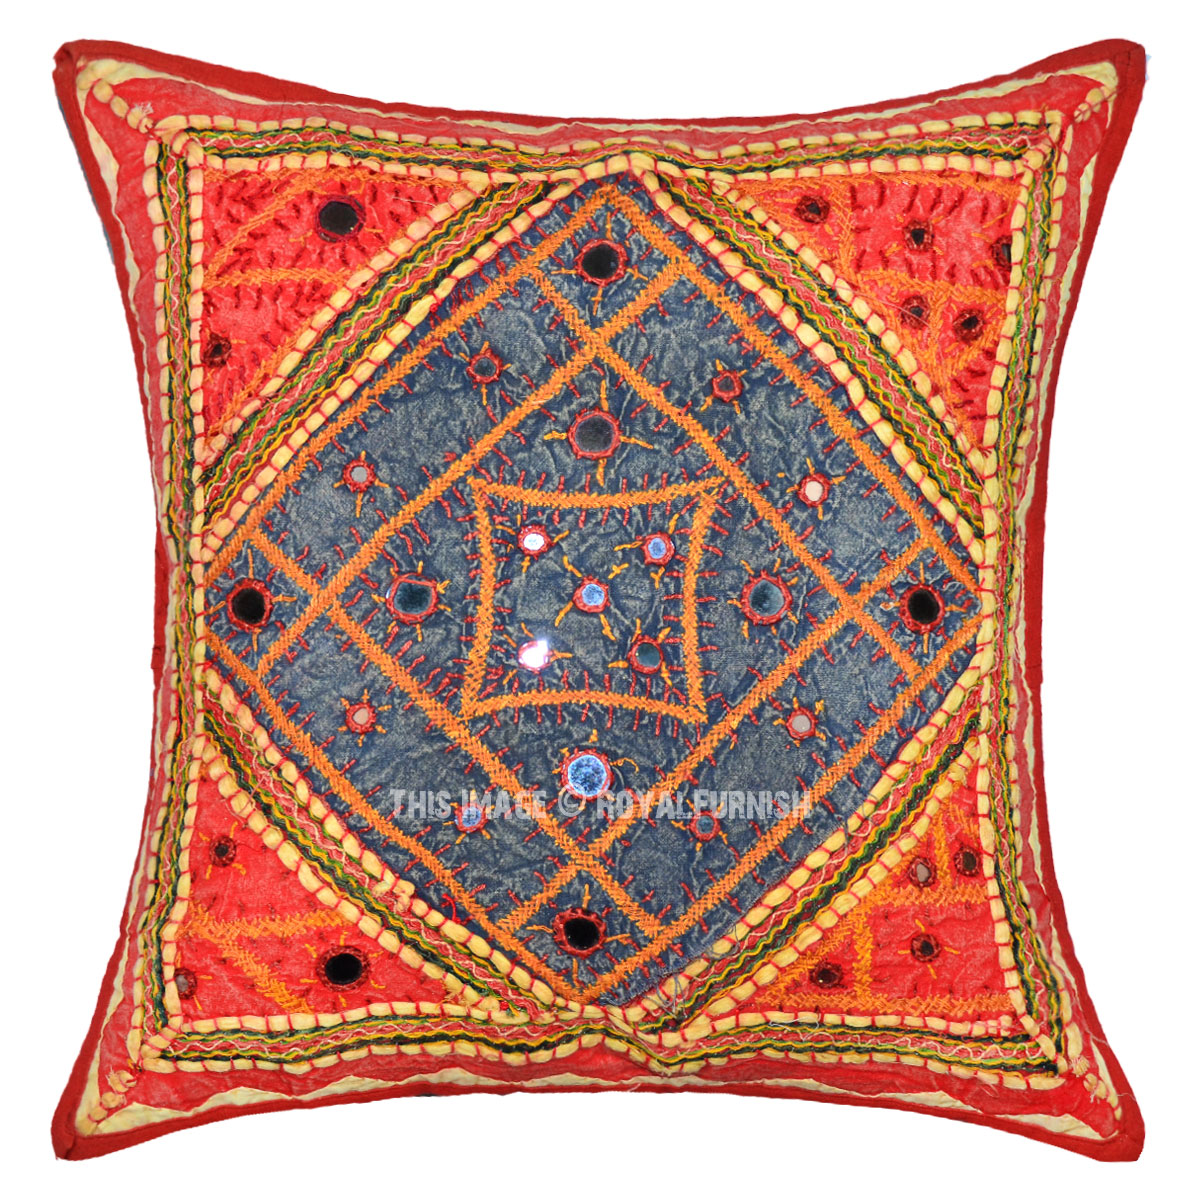 16X16 Red Multi Tribal Unique Hand Embroidered Cotton Throw Pillow Cover - RoyalFurnish.com